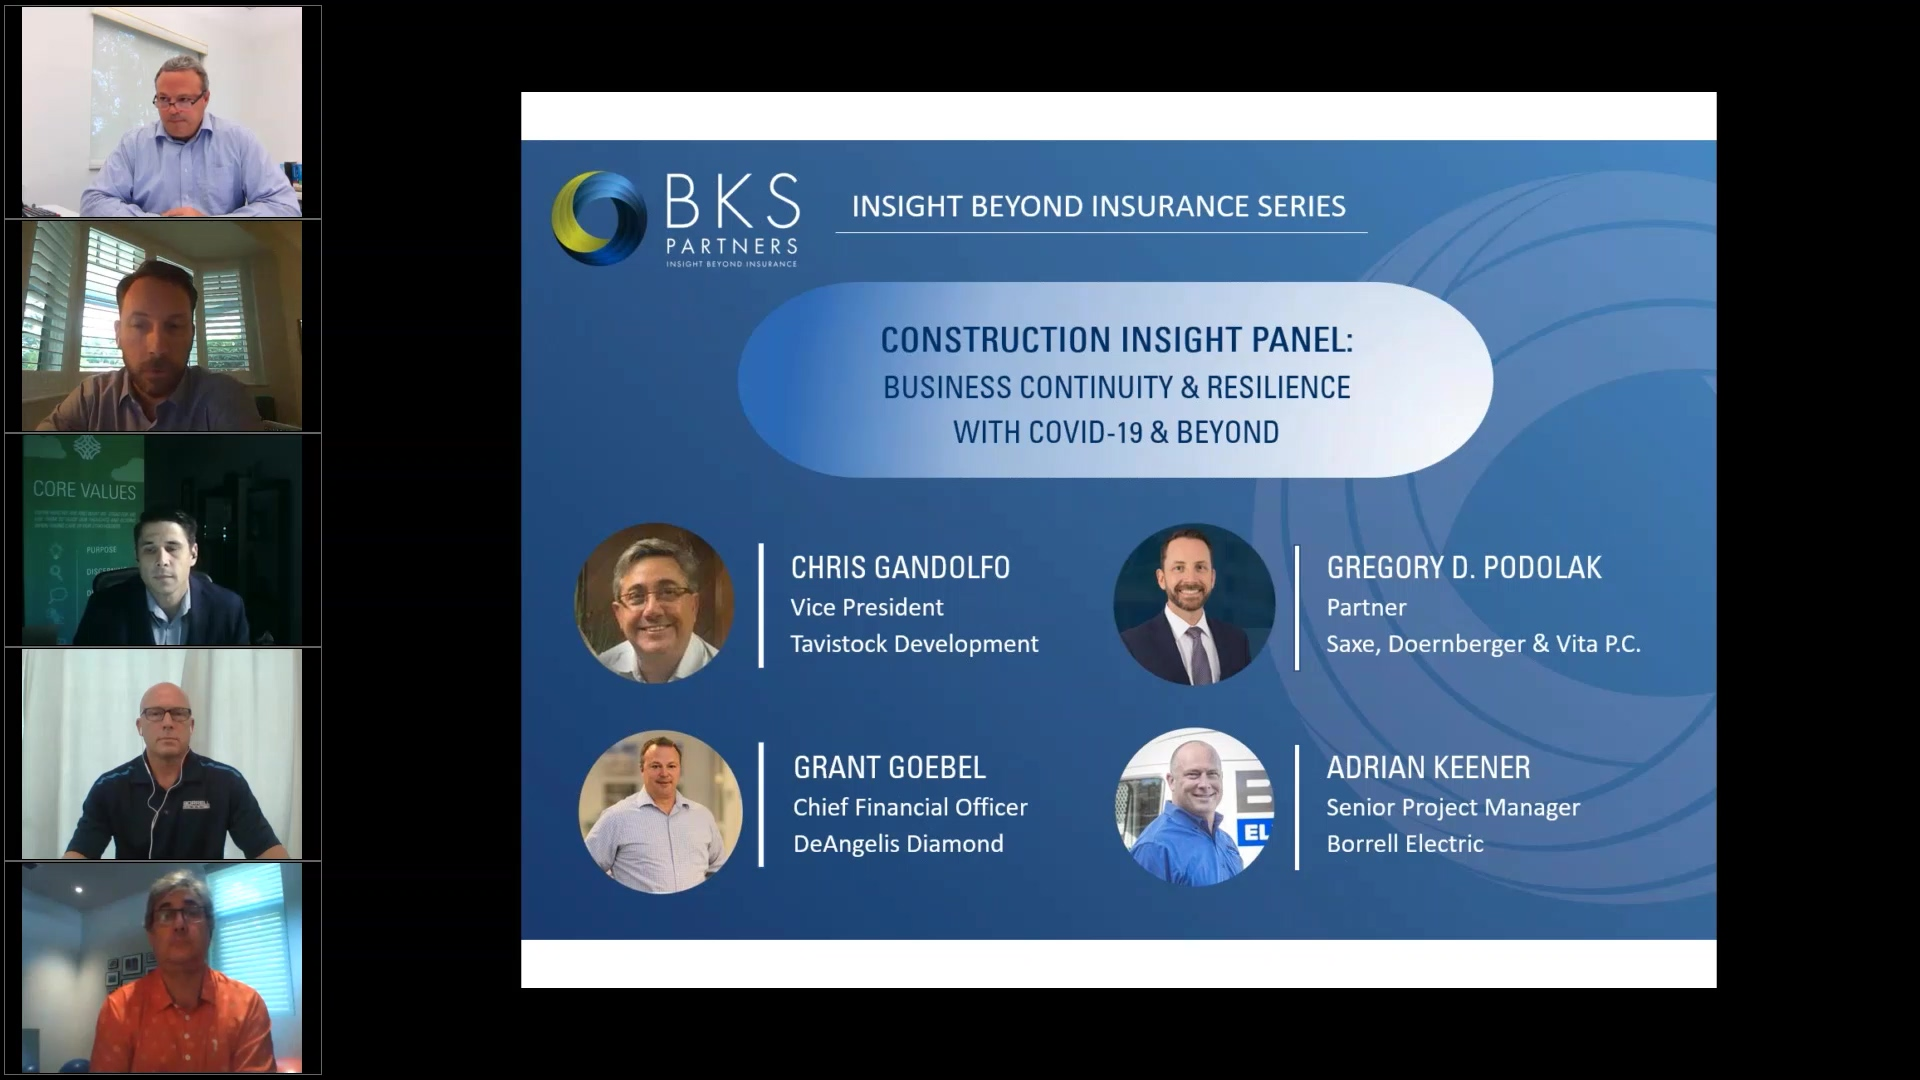 Construction Insight Panel Trimmed